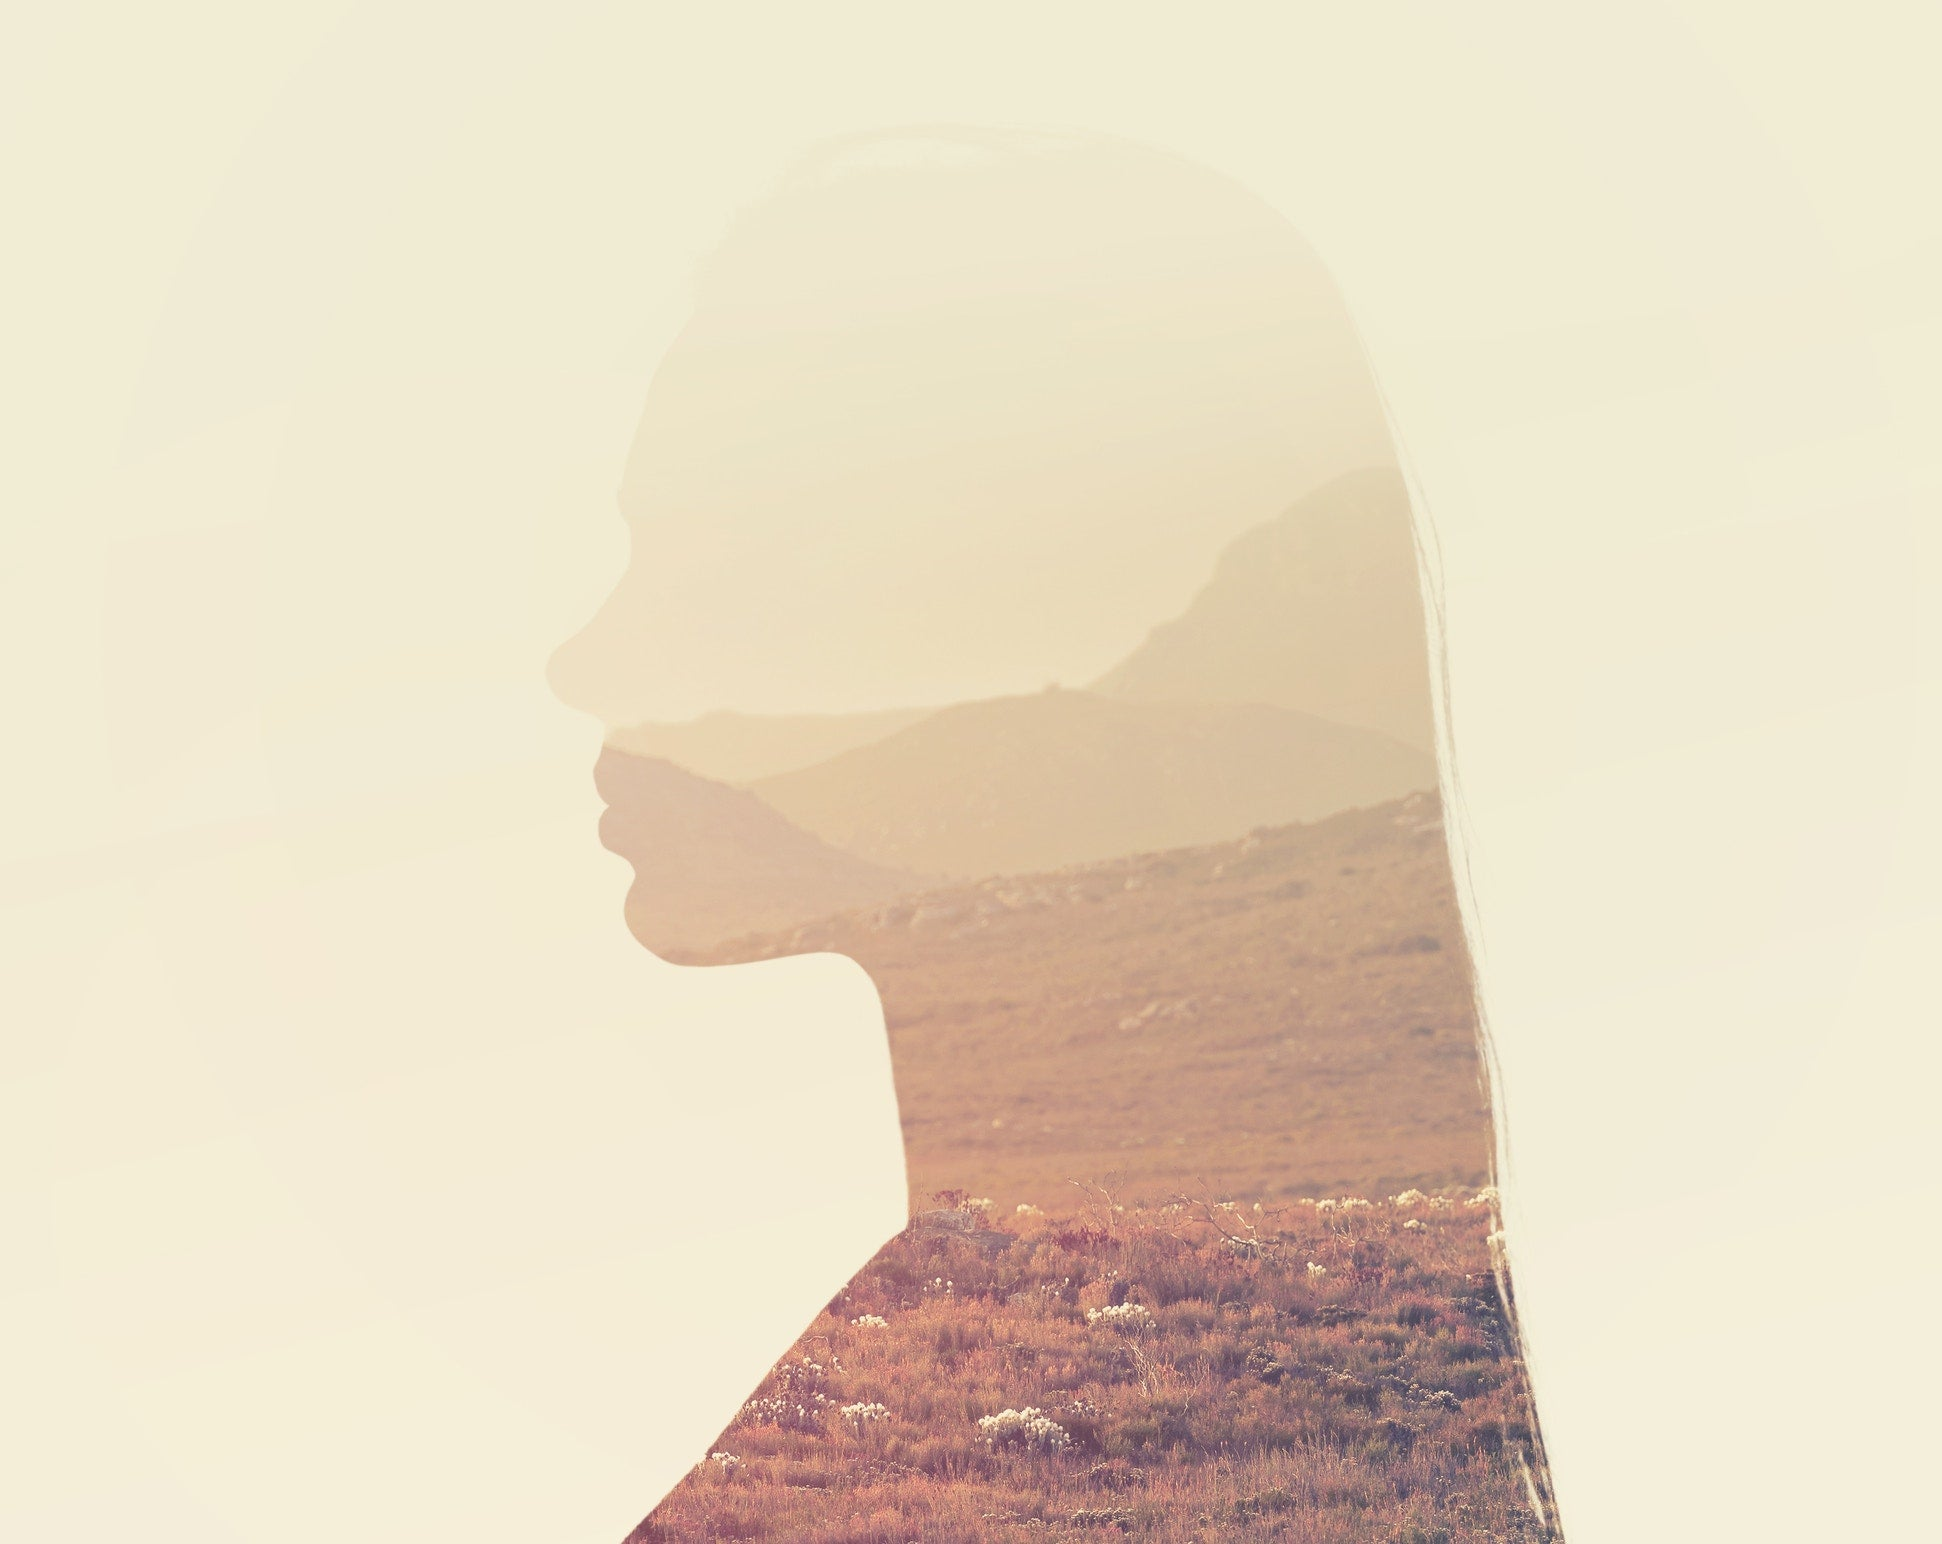 Silhouette of woman's head